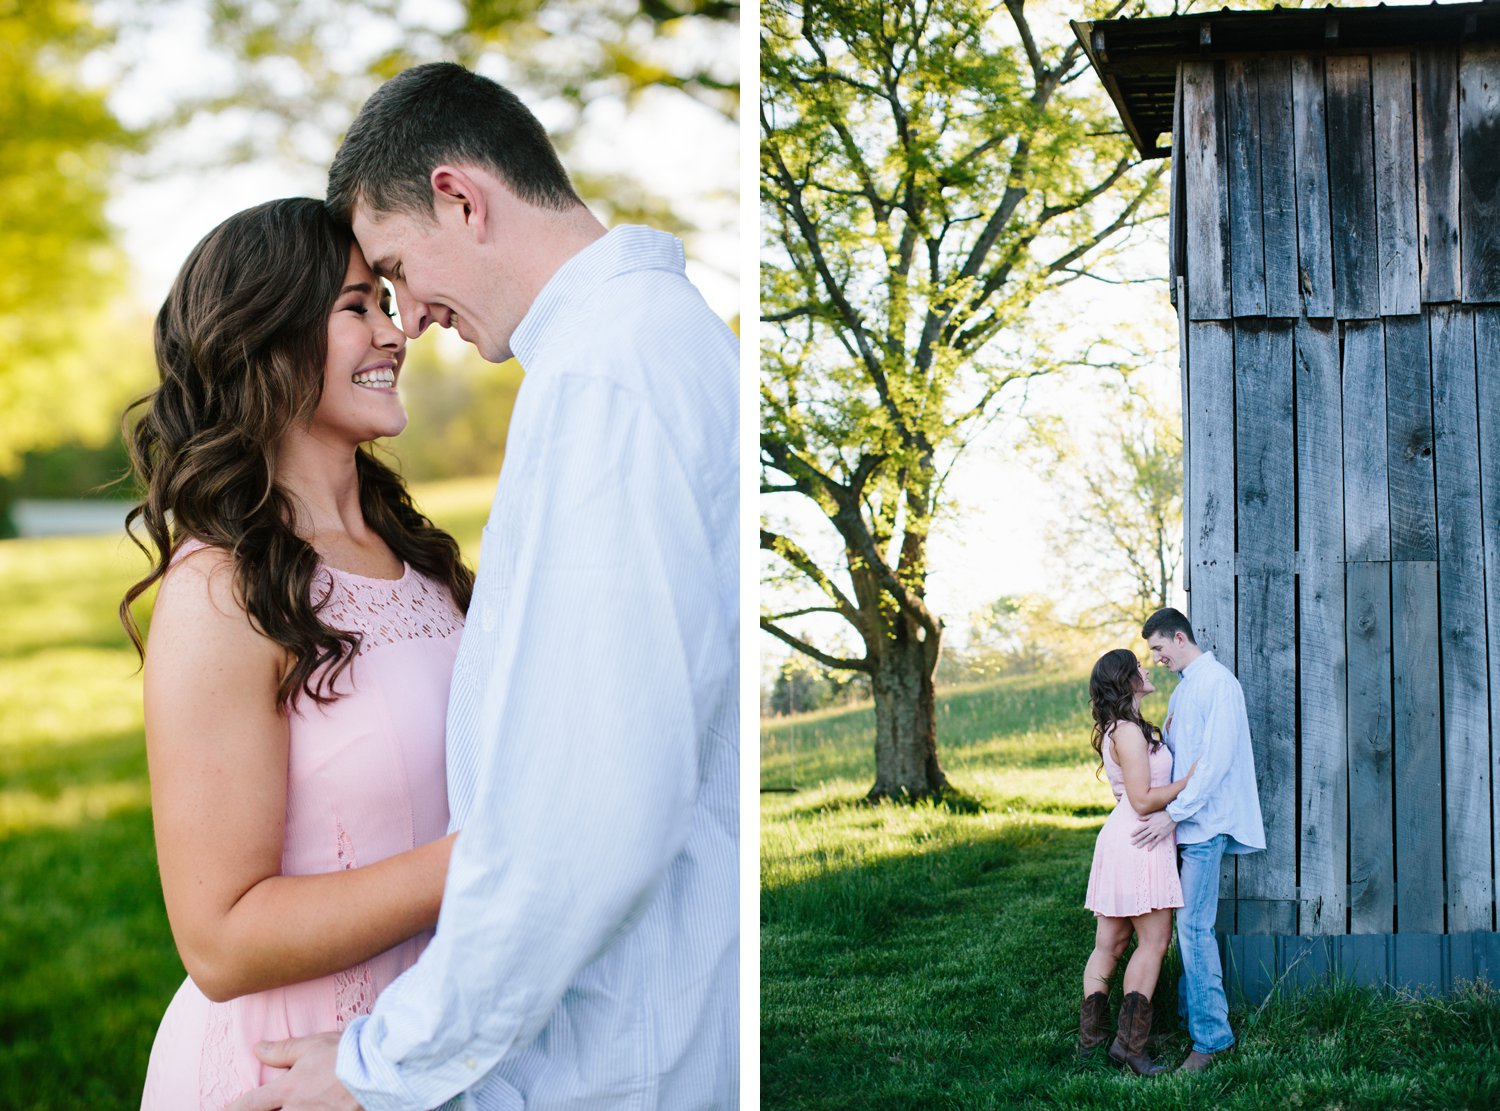 Breanna-Matt-Engagement-068.jpg